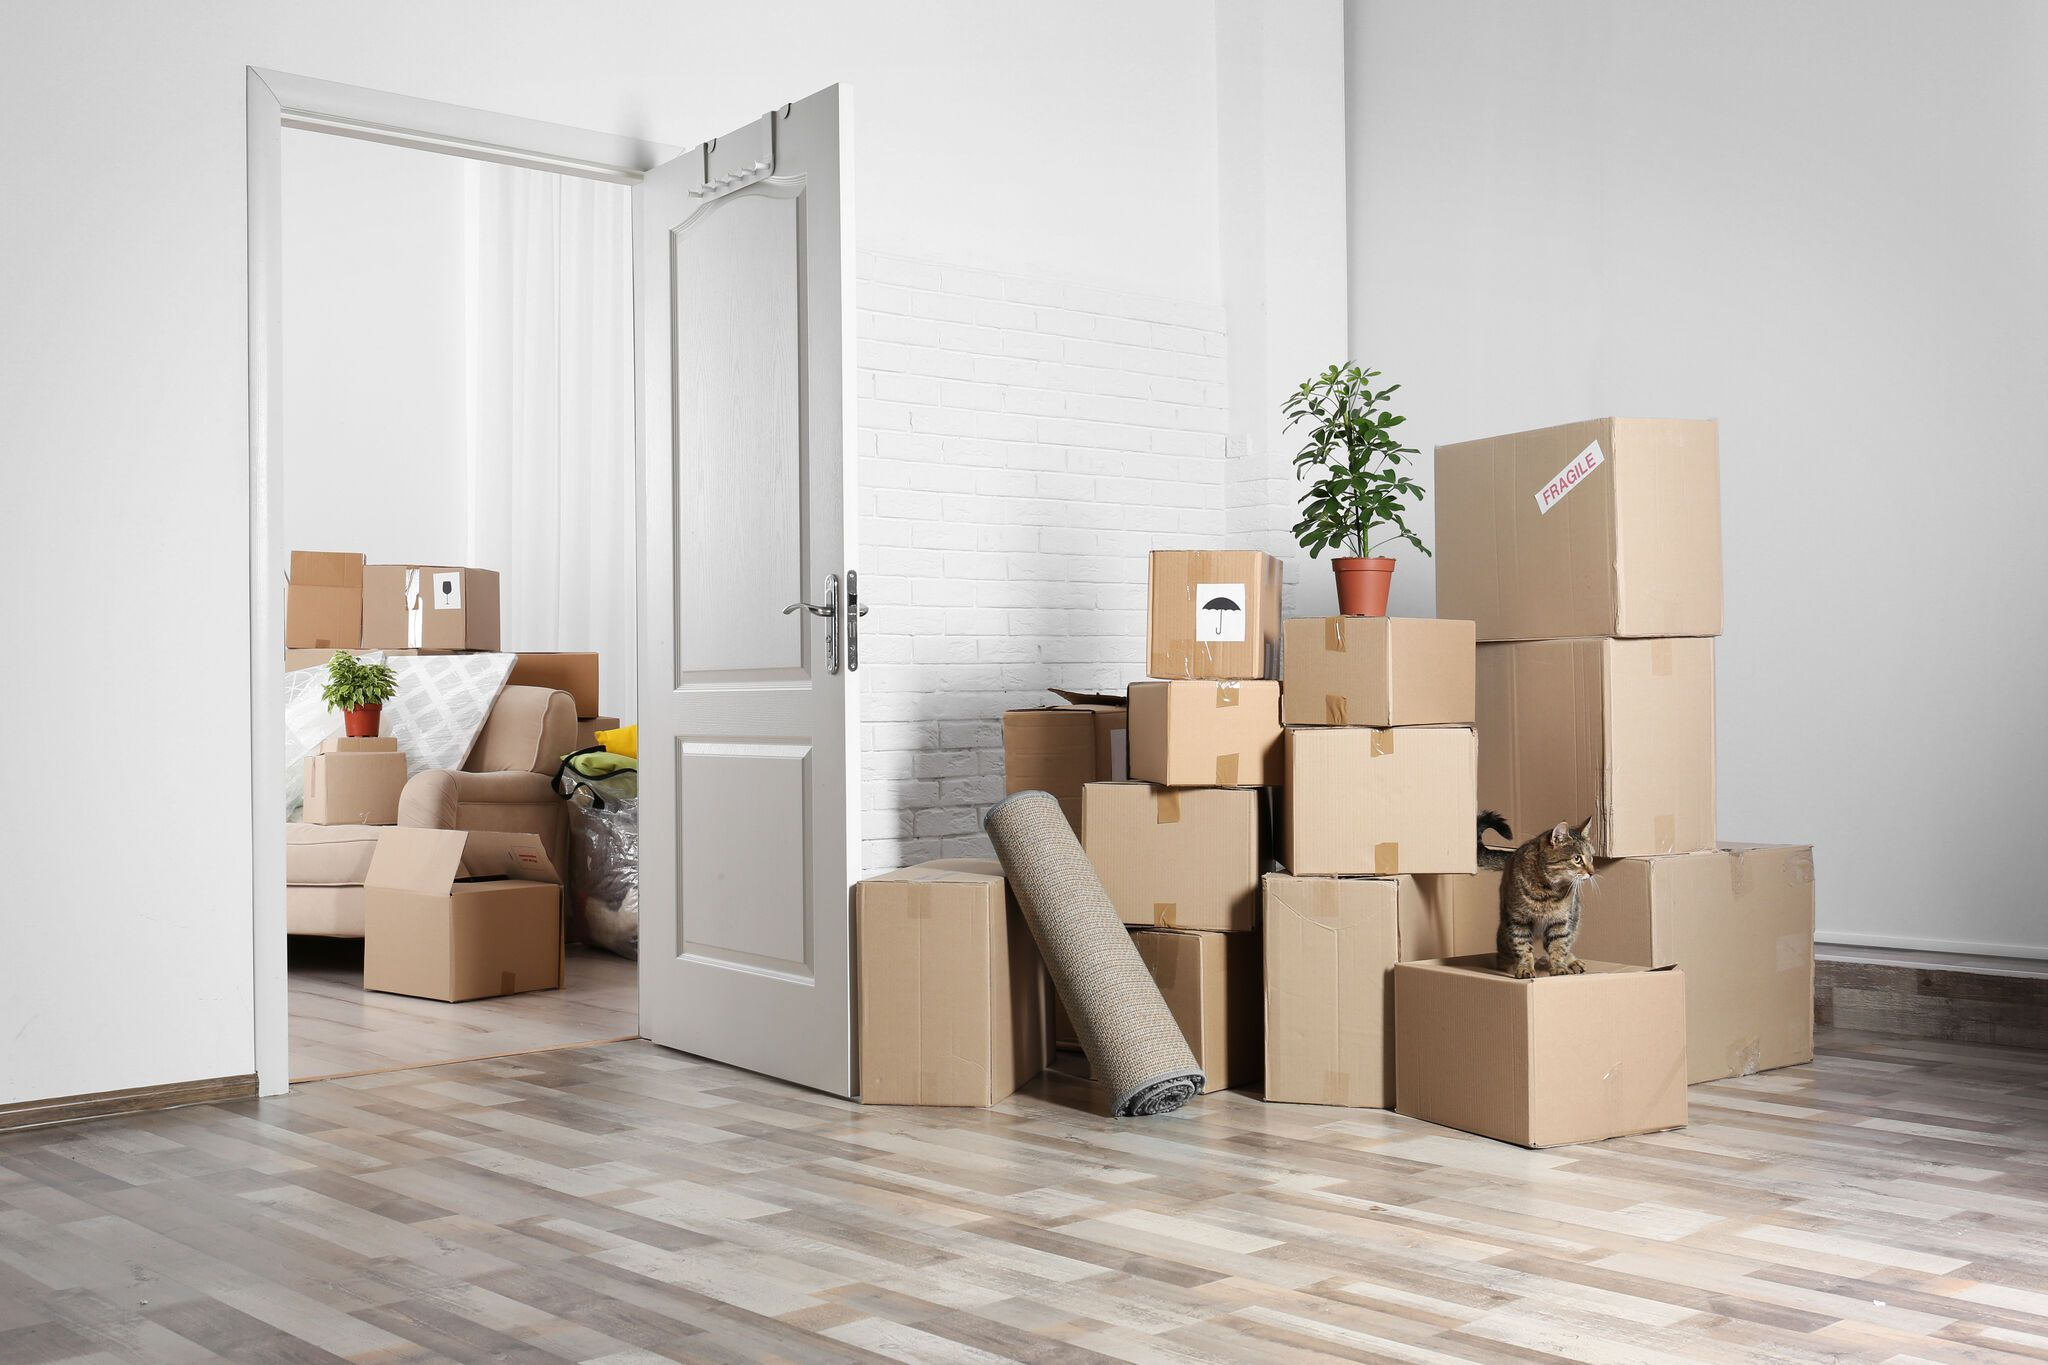 Don T Be Afraid To Order Lots Of Packing Boxes Because You Never Know How Many You Will Need Better To Be Safe T House Removals Moving House Tips